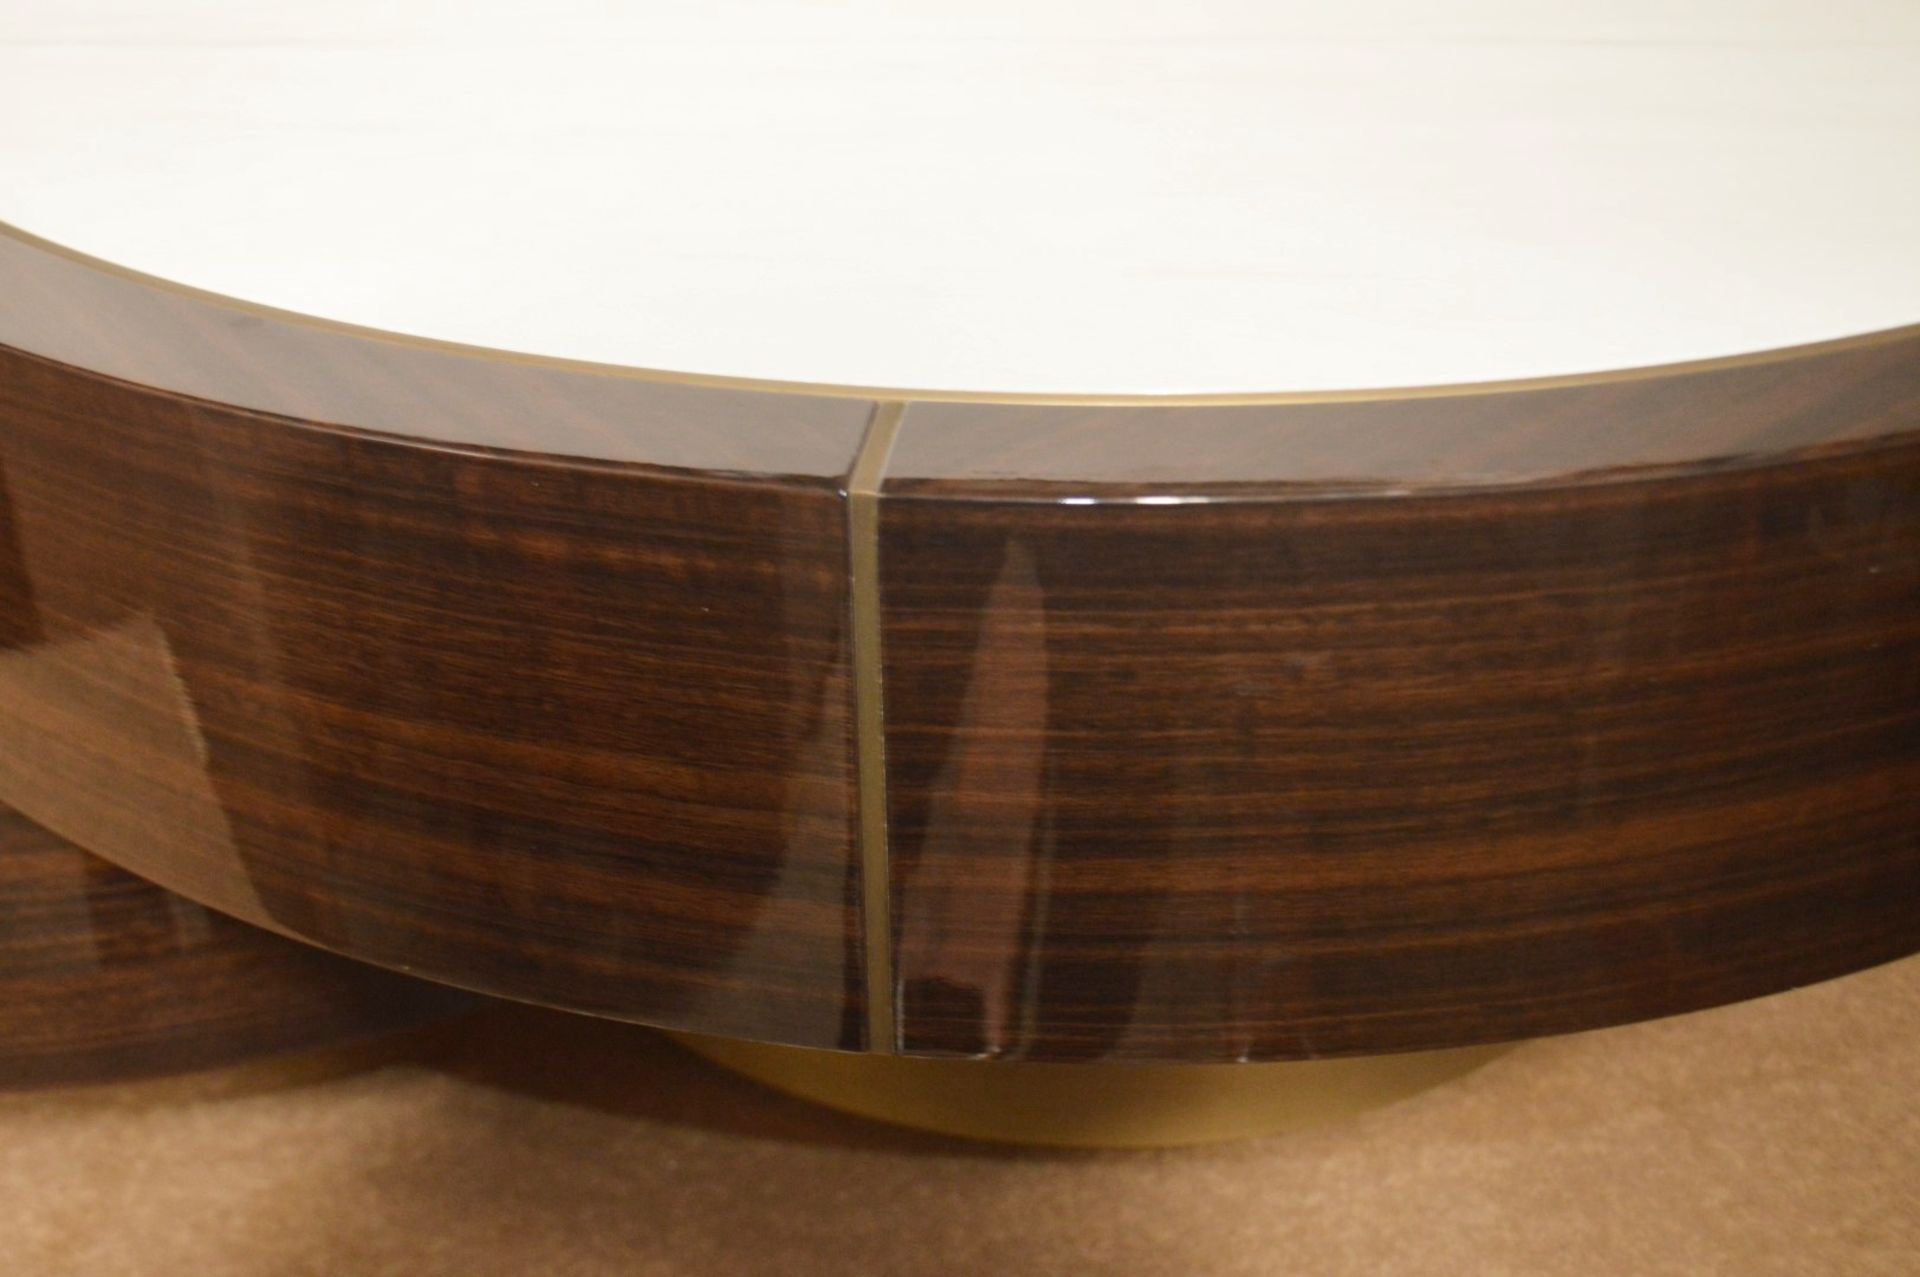 1 x FRATO 'Aarhus' Luxury Coffee Table Topped With Marble With High Gloss Finish - RRP £6,611 - Image 7 of 9